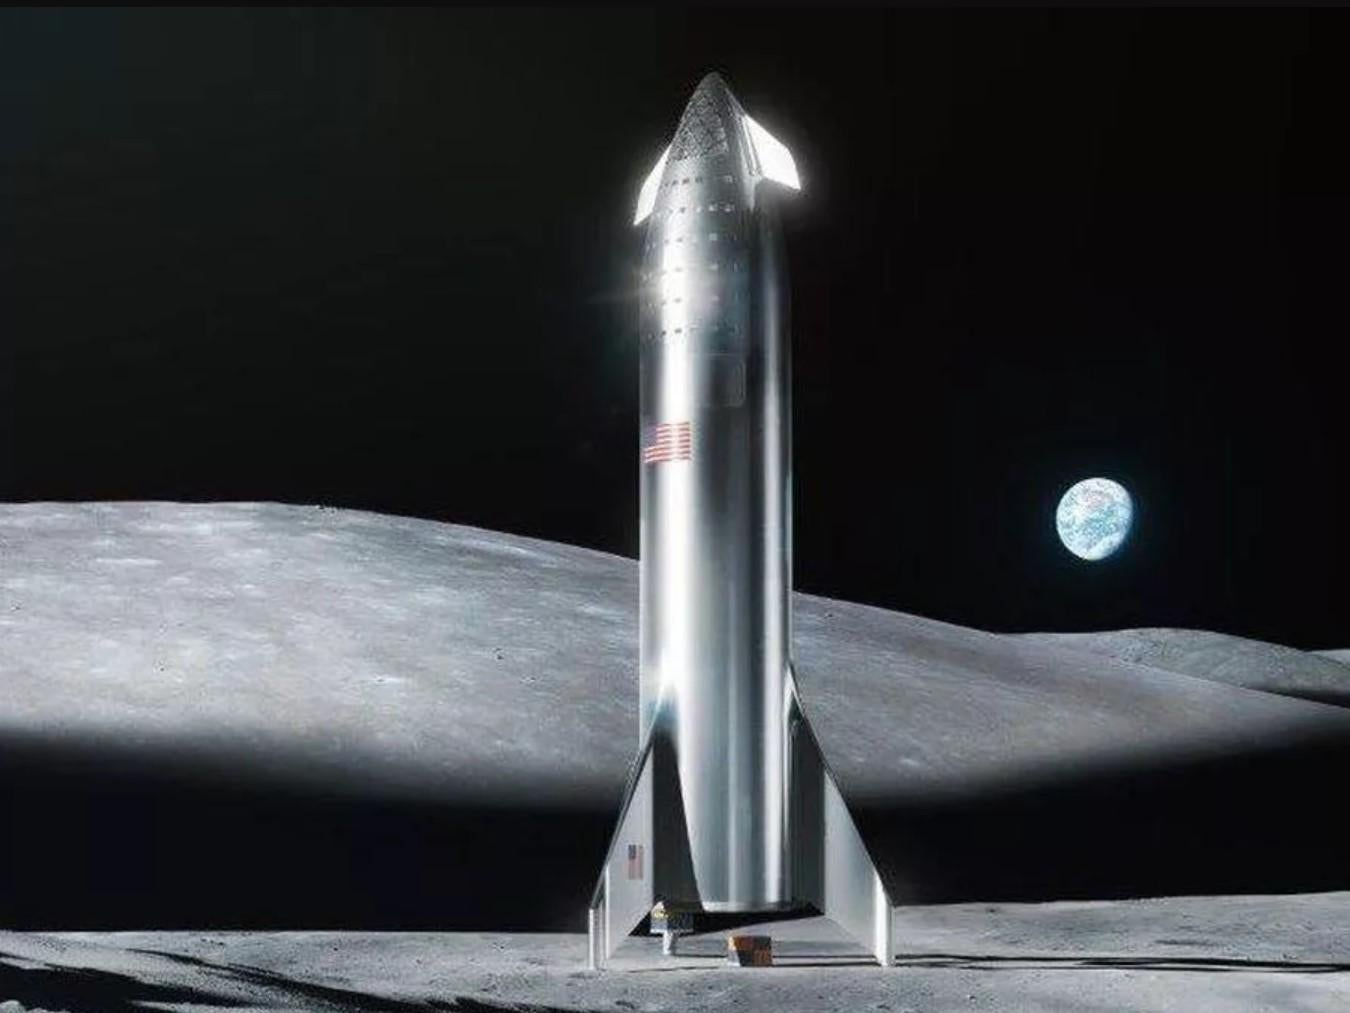 Elon Musk says SpaceX can land astronauts on the moon within two yea…